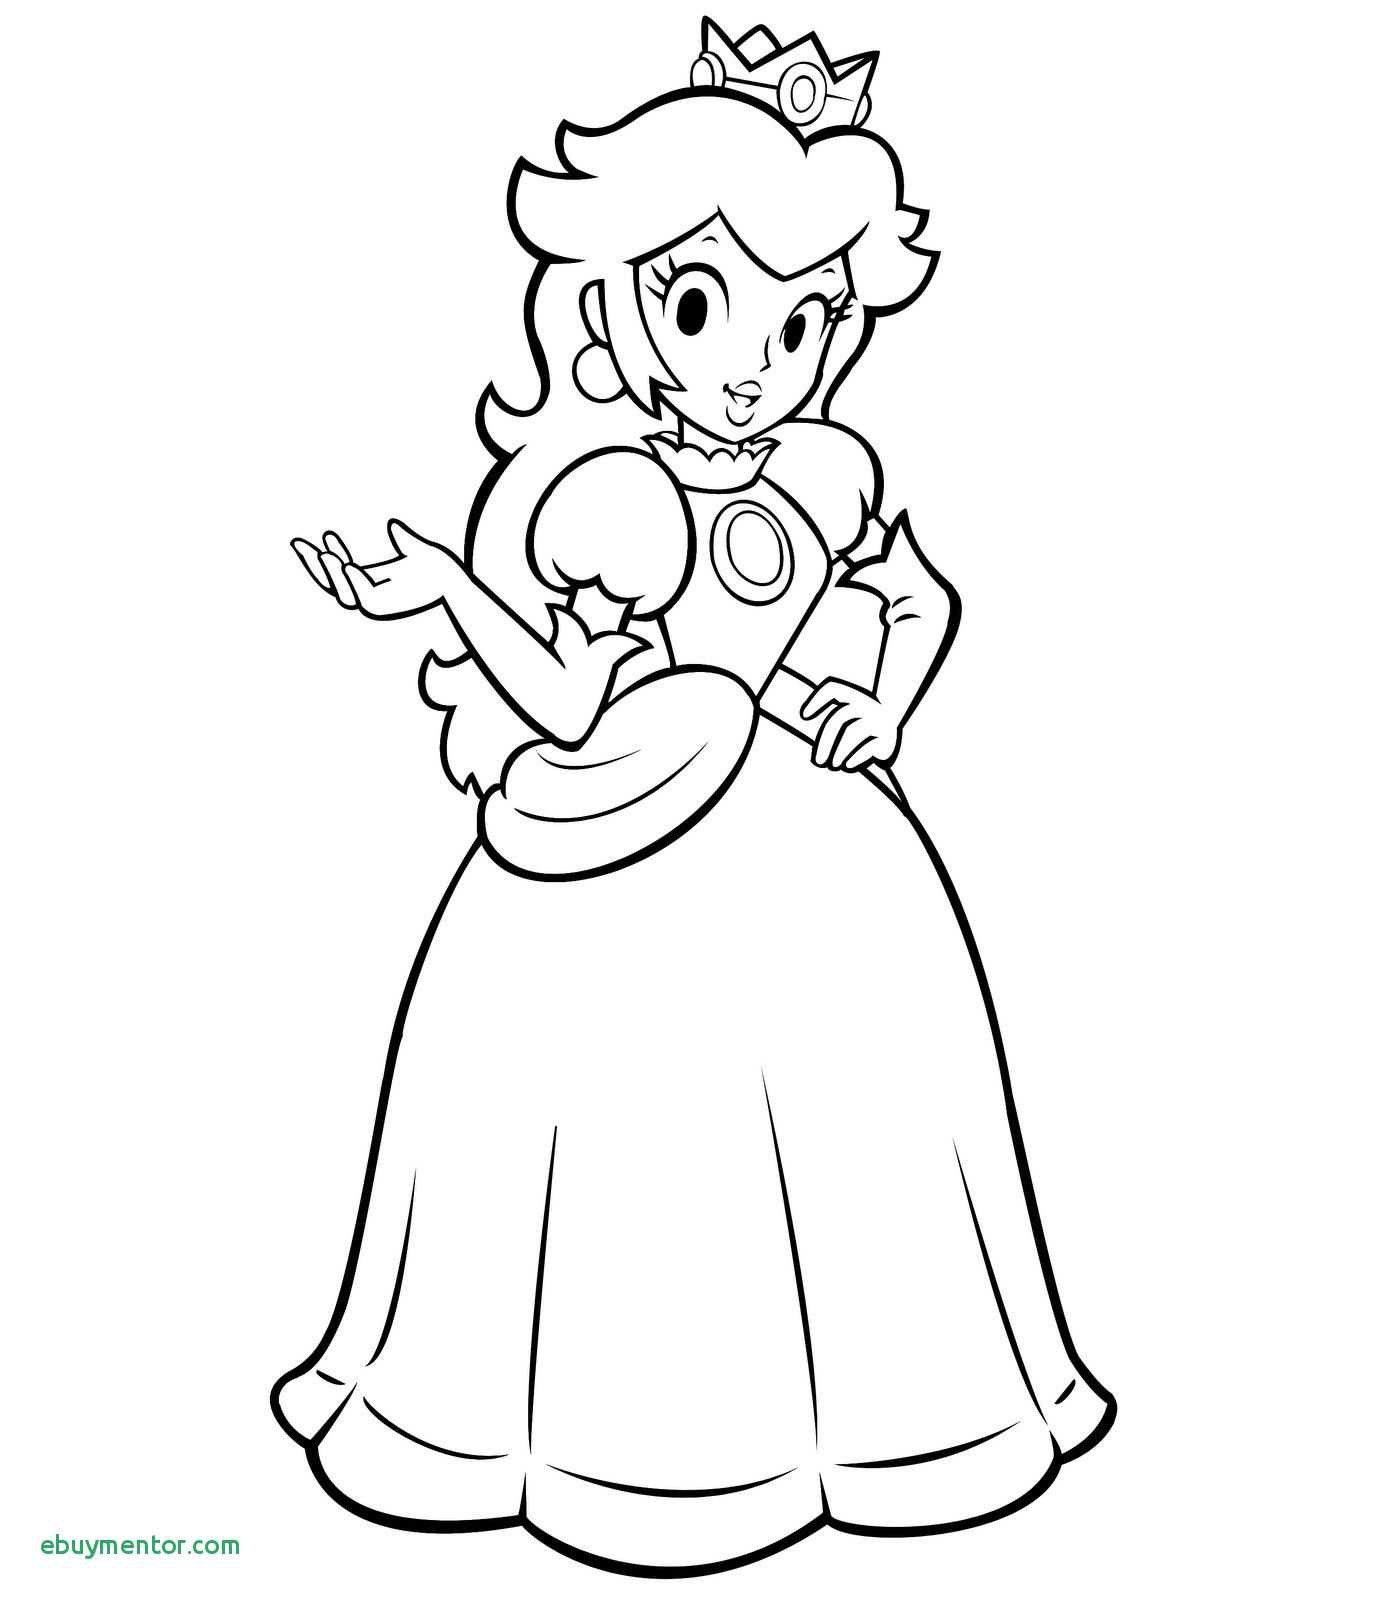 Princess Peach Coloring Pages Printable Through The Thousands Of